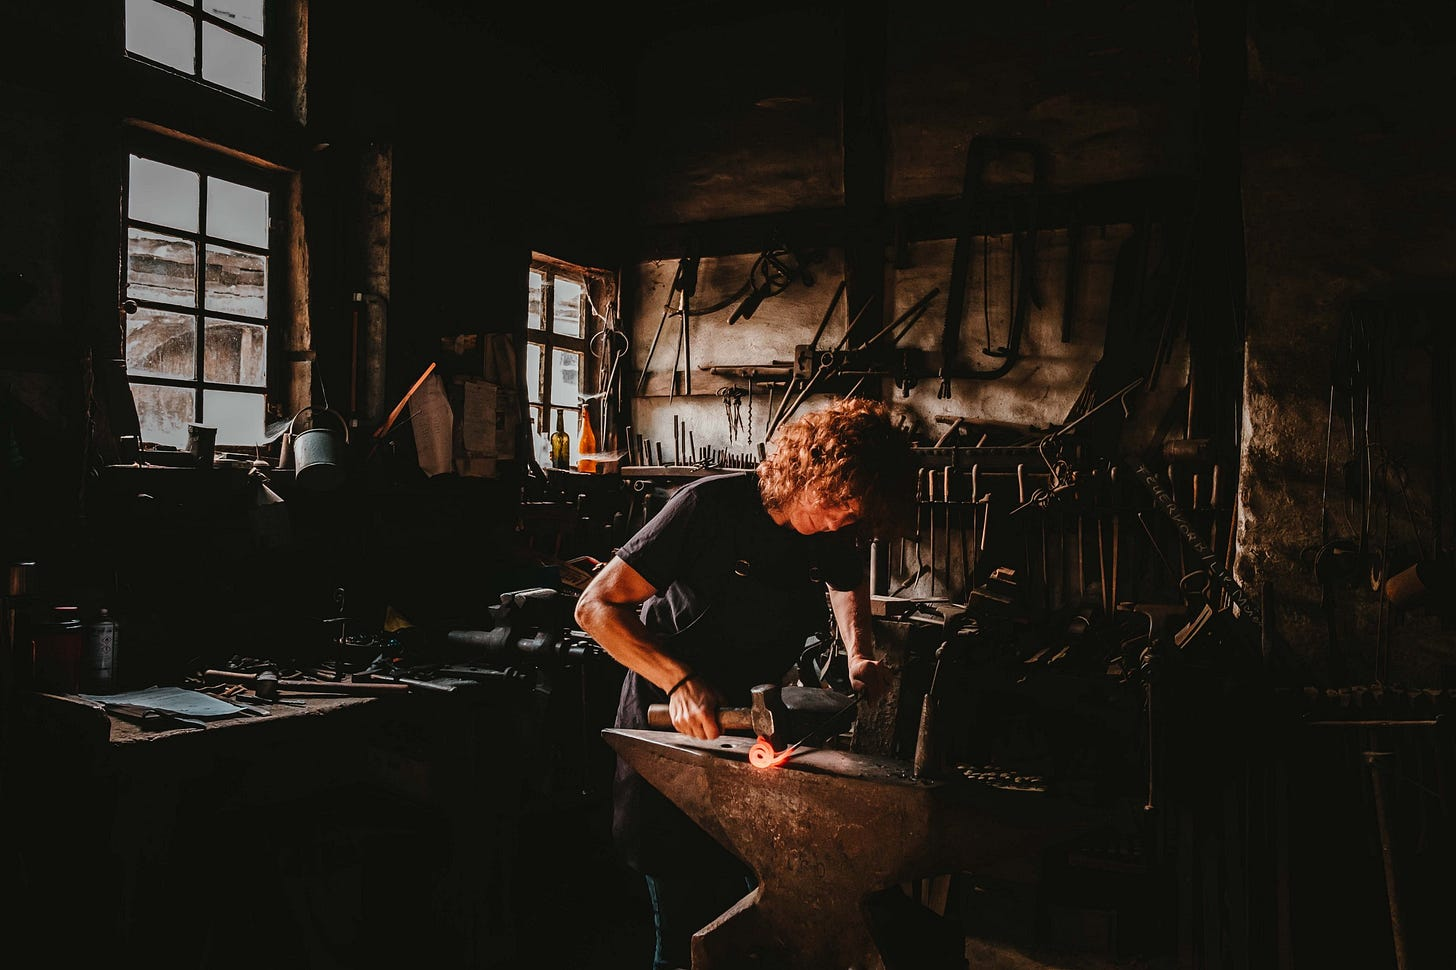 image of a blacksmith working in a workshop for article by Larry G. Maguire